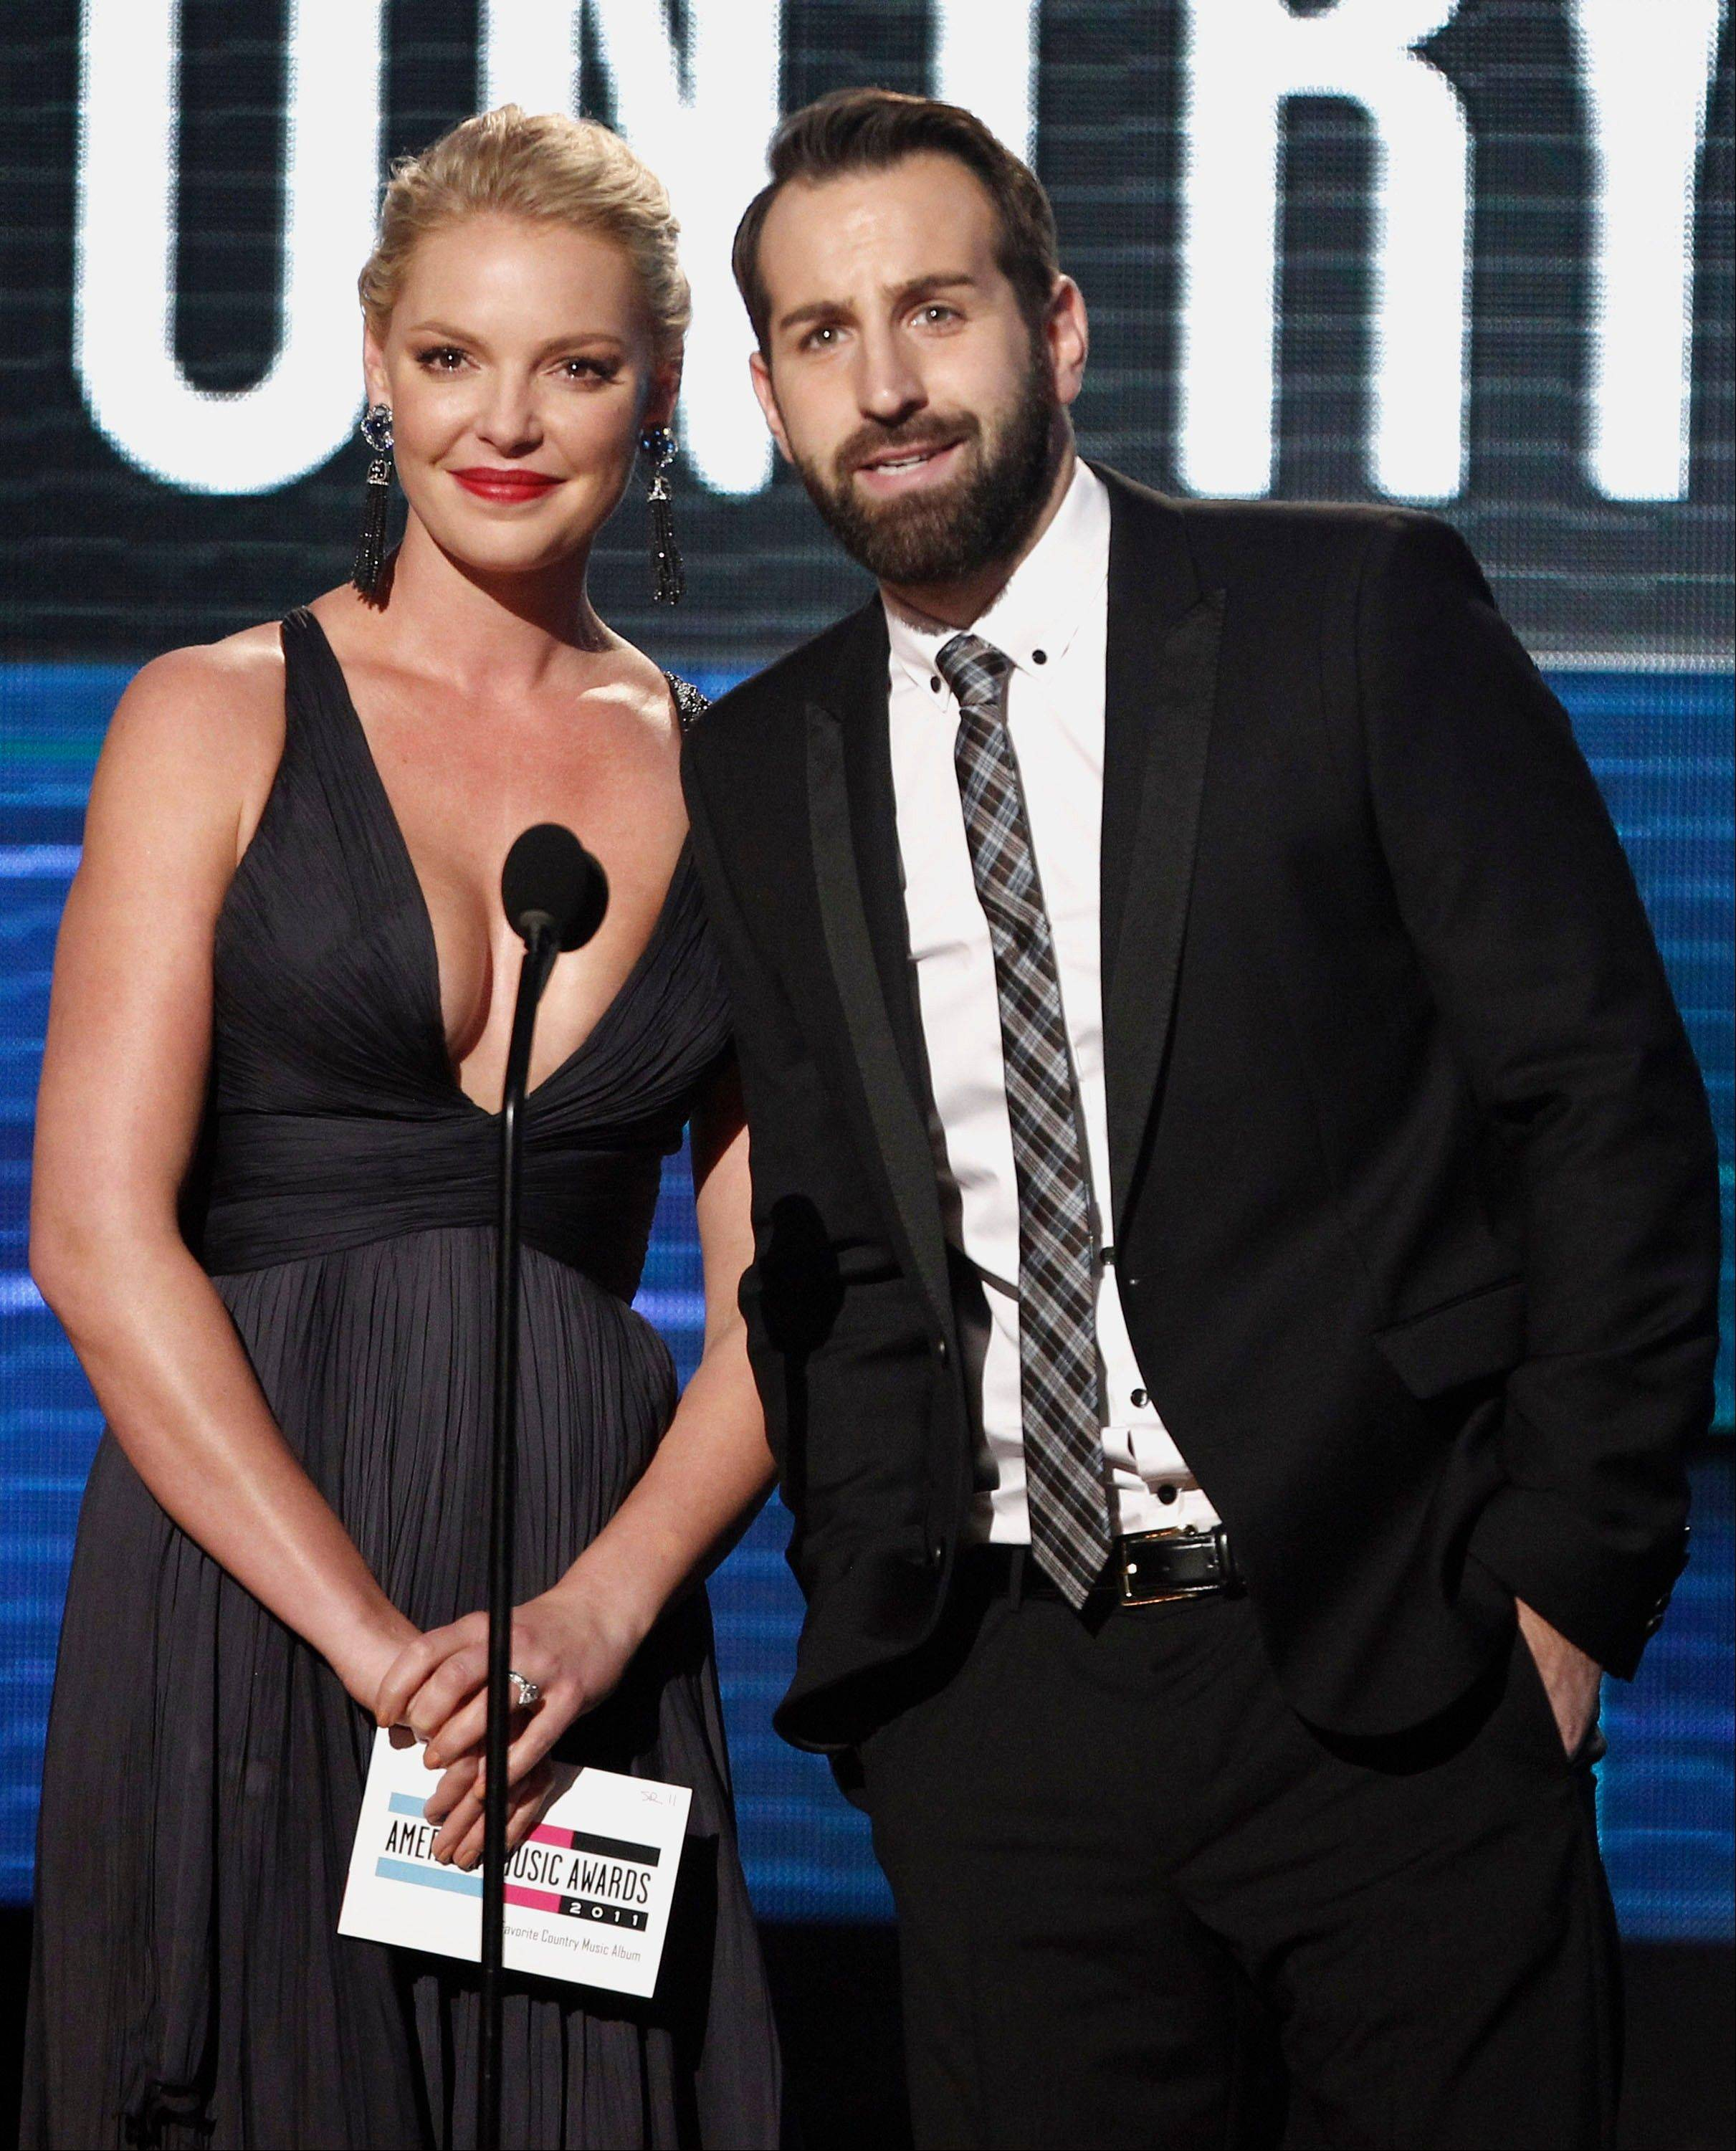 Katherine Heigl and Josh Kelley are seen onstage at the 39th Annual American Music Awards on Sunday, Nov. 20, 2011 in Los Angeles.